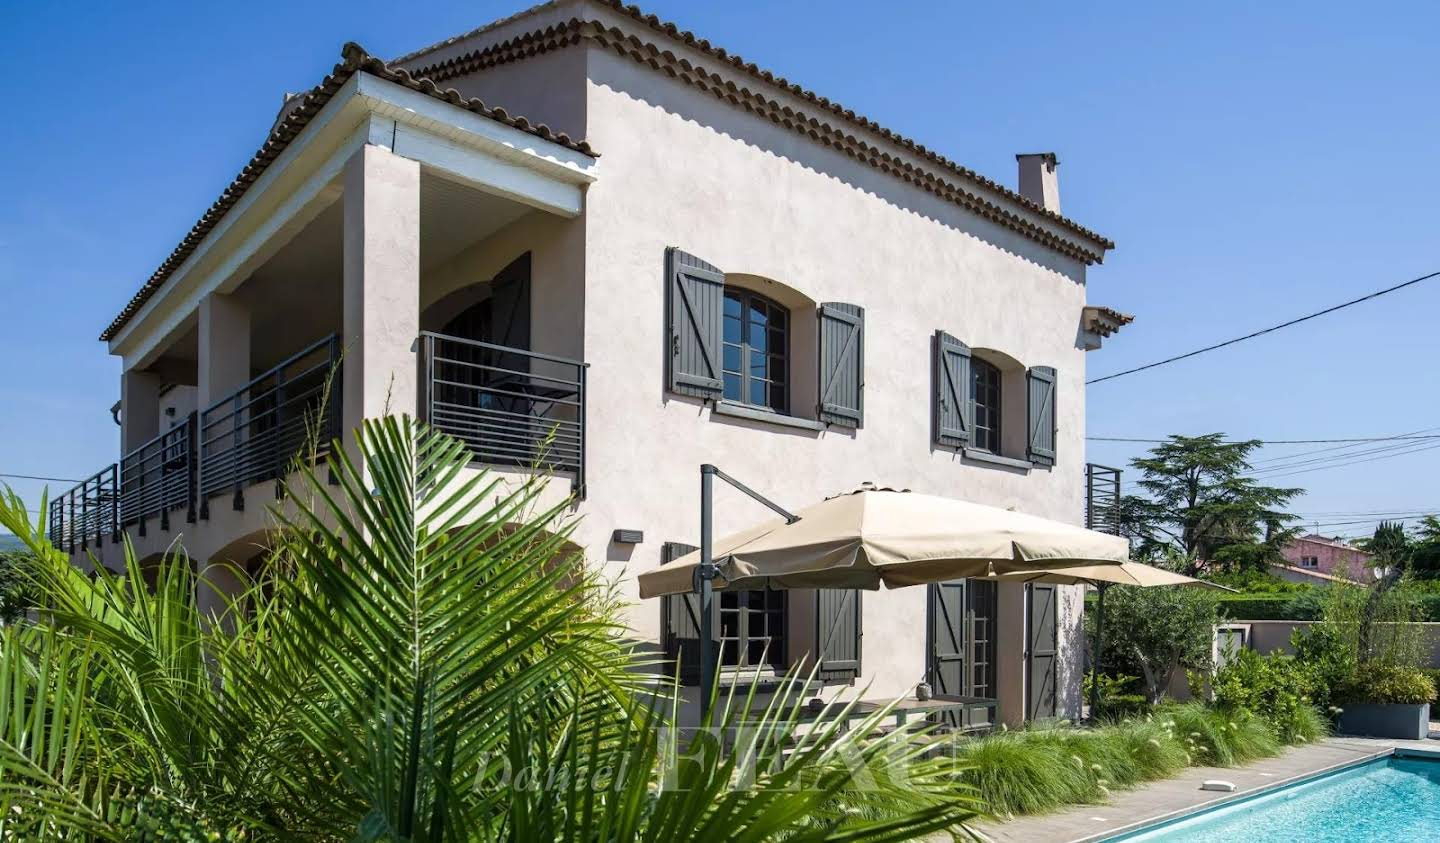 House with pool and terrace Saint-Cyr-sur-Mer